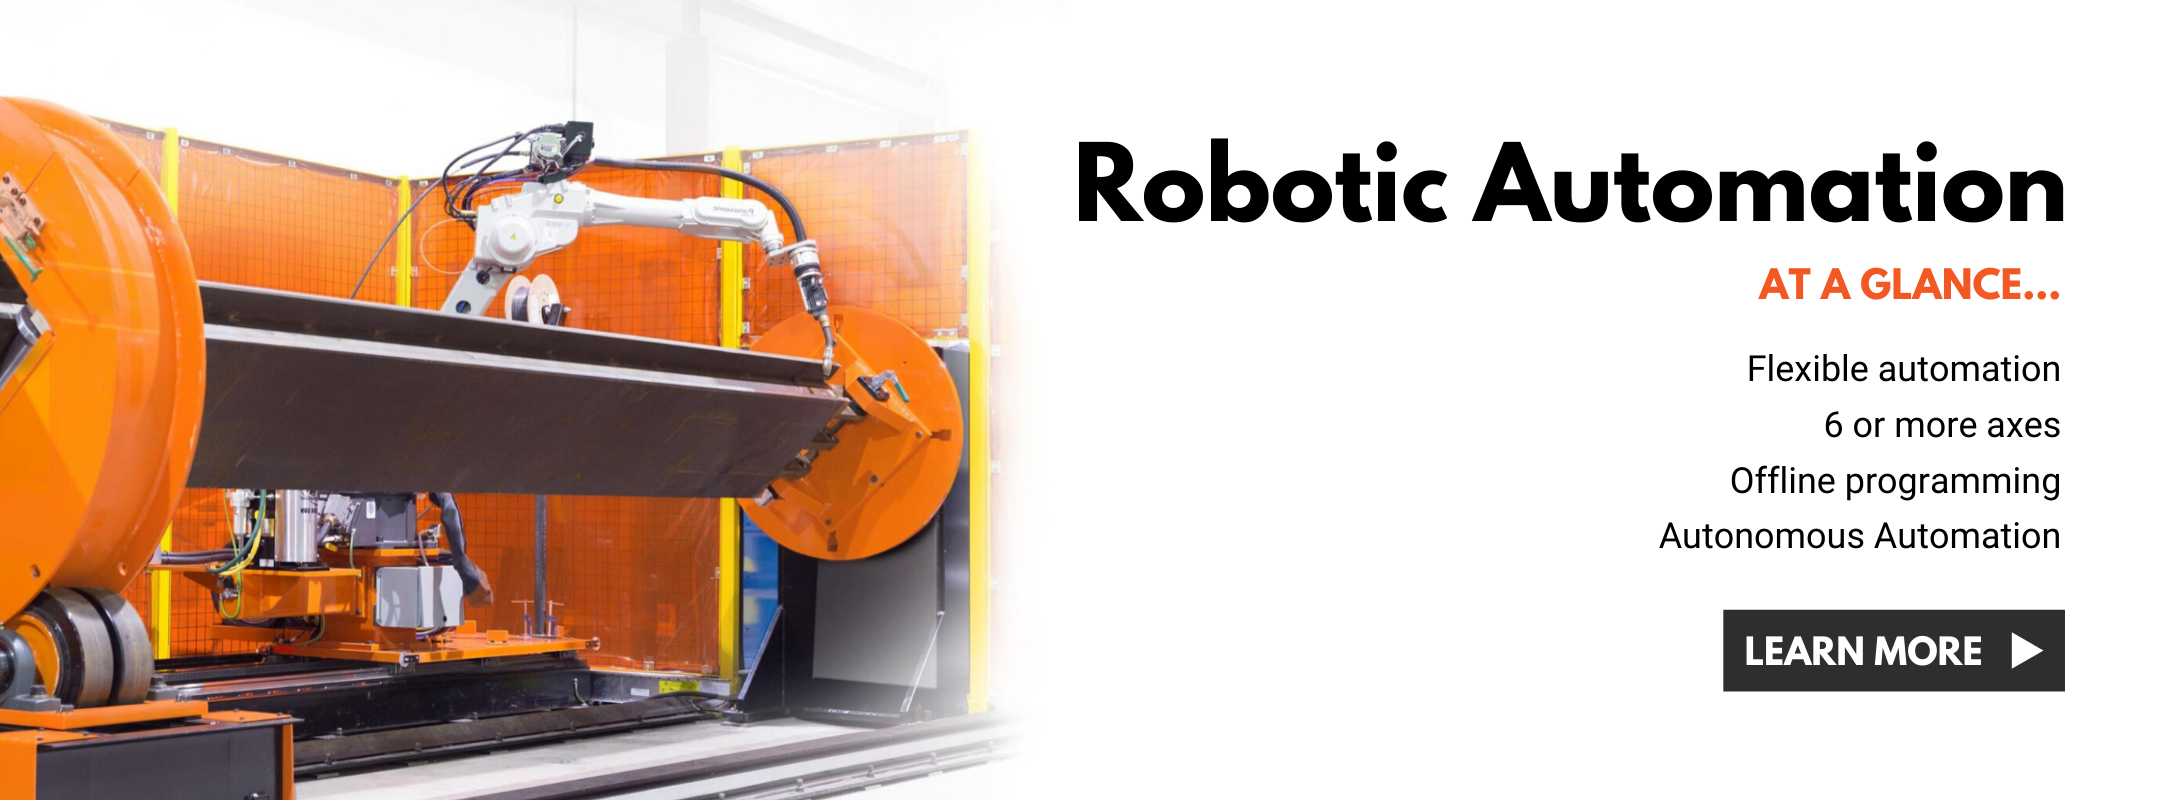 Orange and white robotic welding system showing IRCO Automation's automated welding solutions.